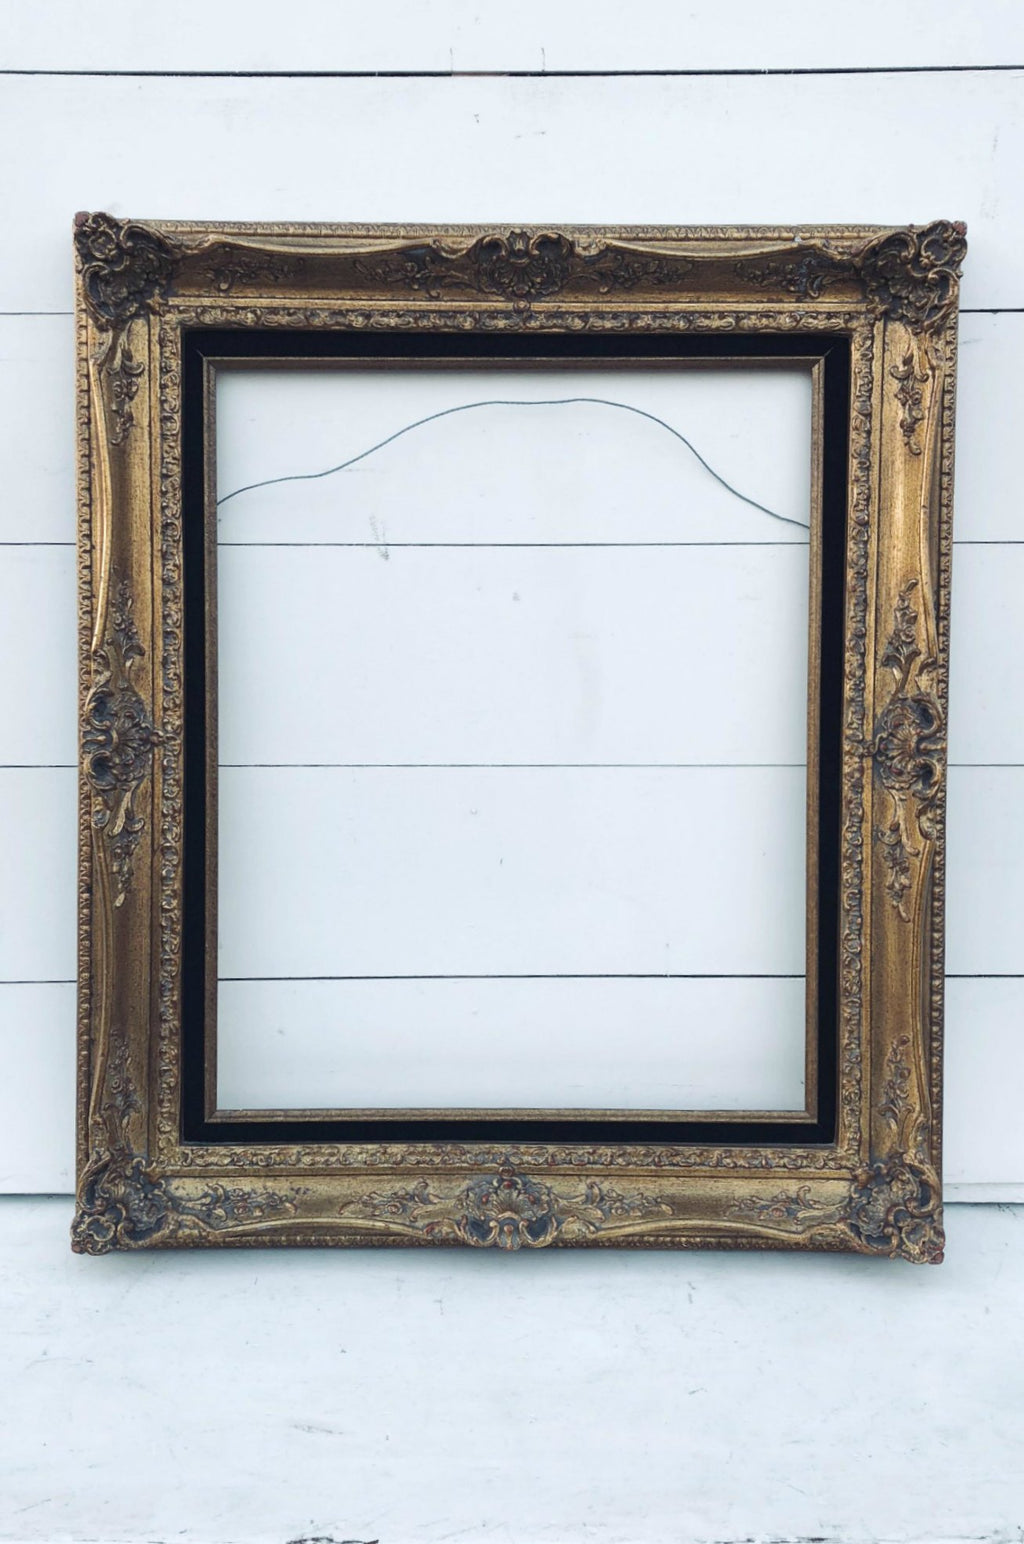 Vintage gold and black frame